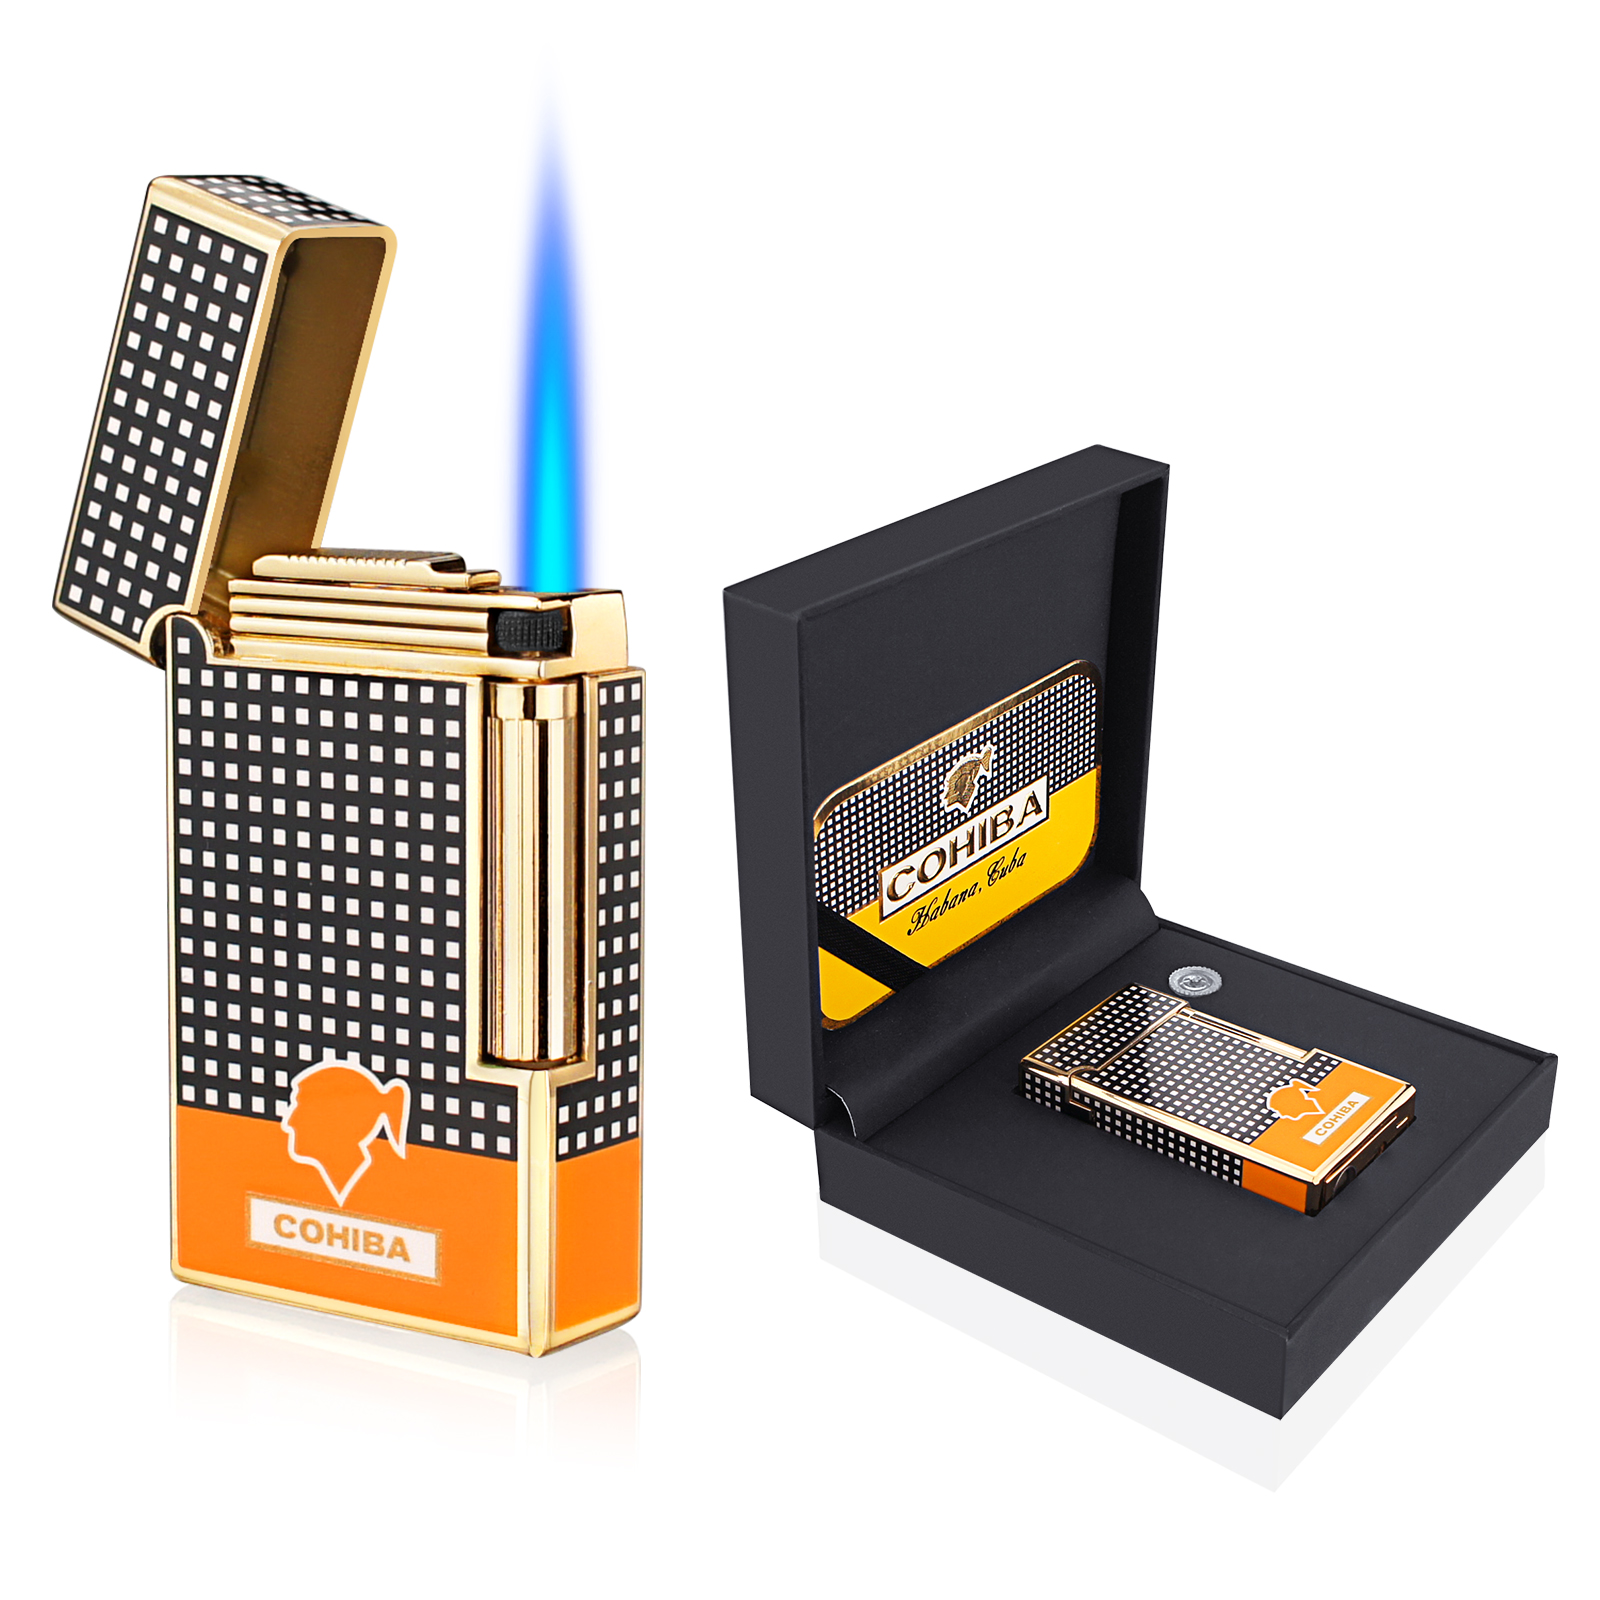 COHIBA Cigar Lighter 1 Torch Jet Flame Portable Lighter Bottom with Cigar Punch Smoking Tool Cigar Accessories Gift Box